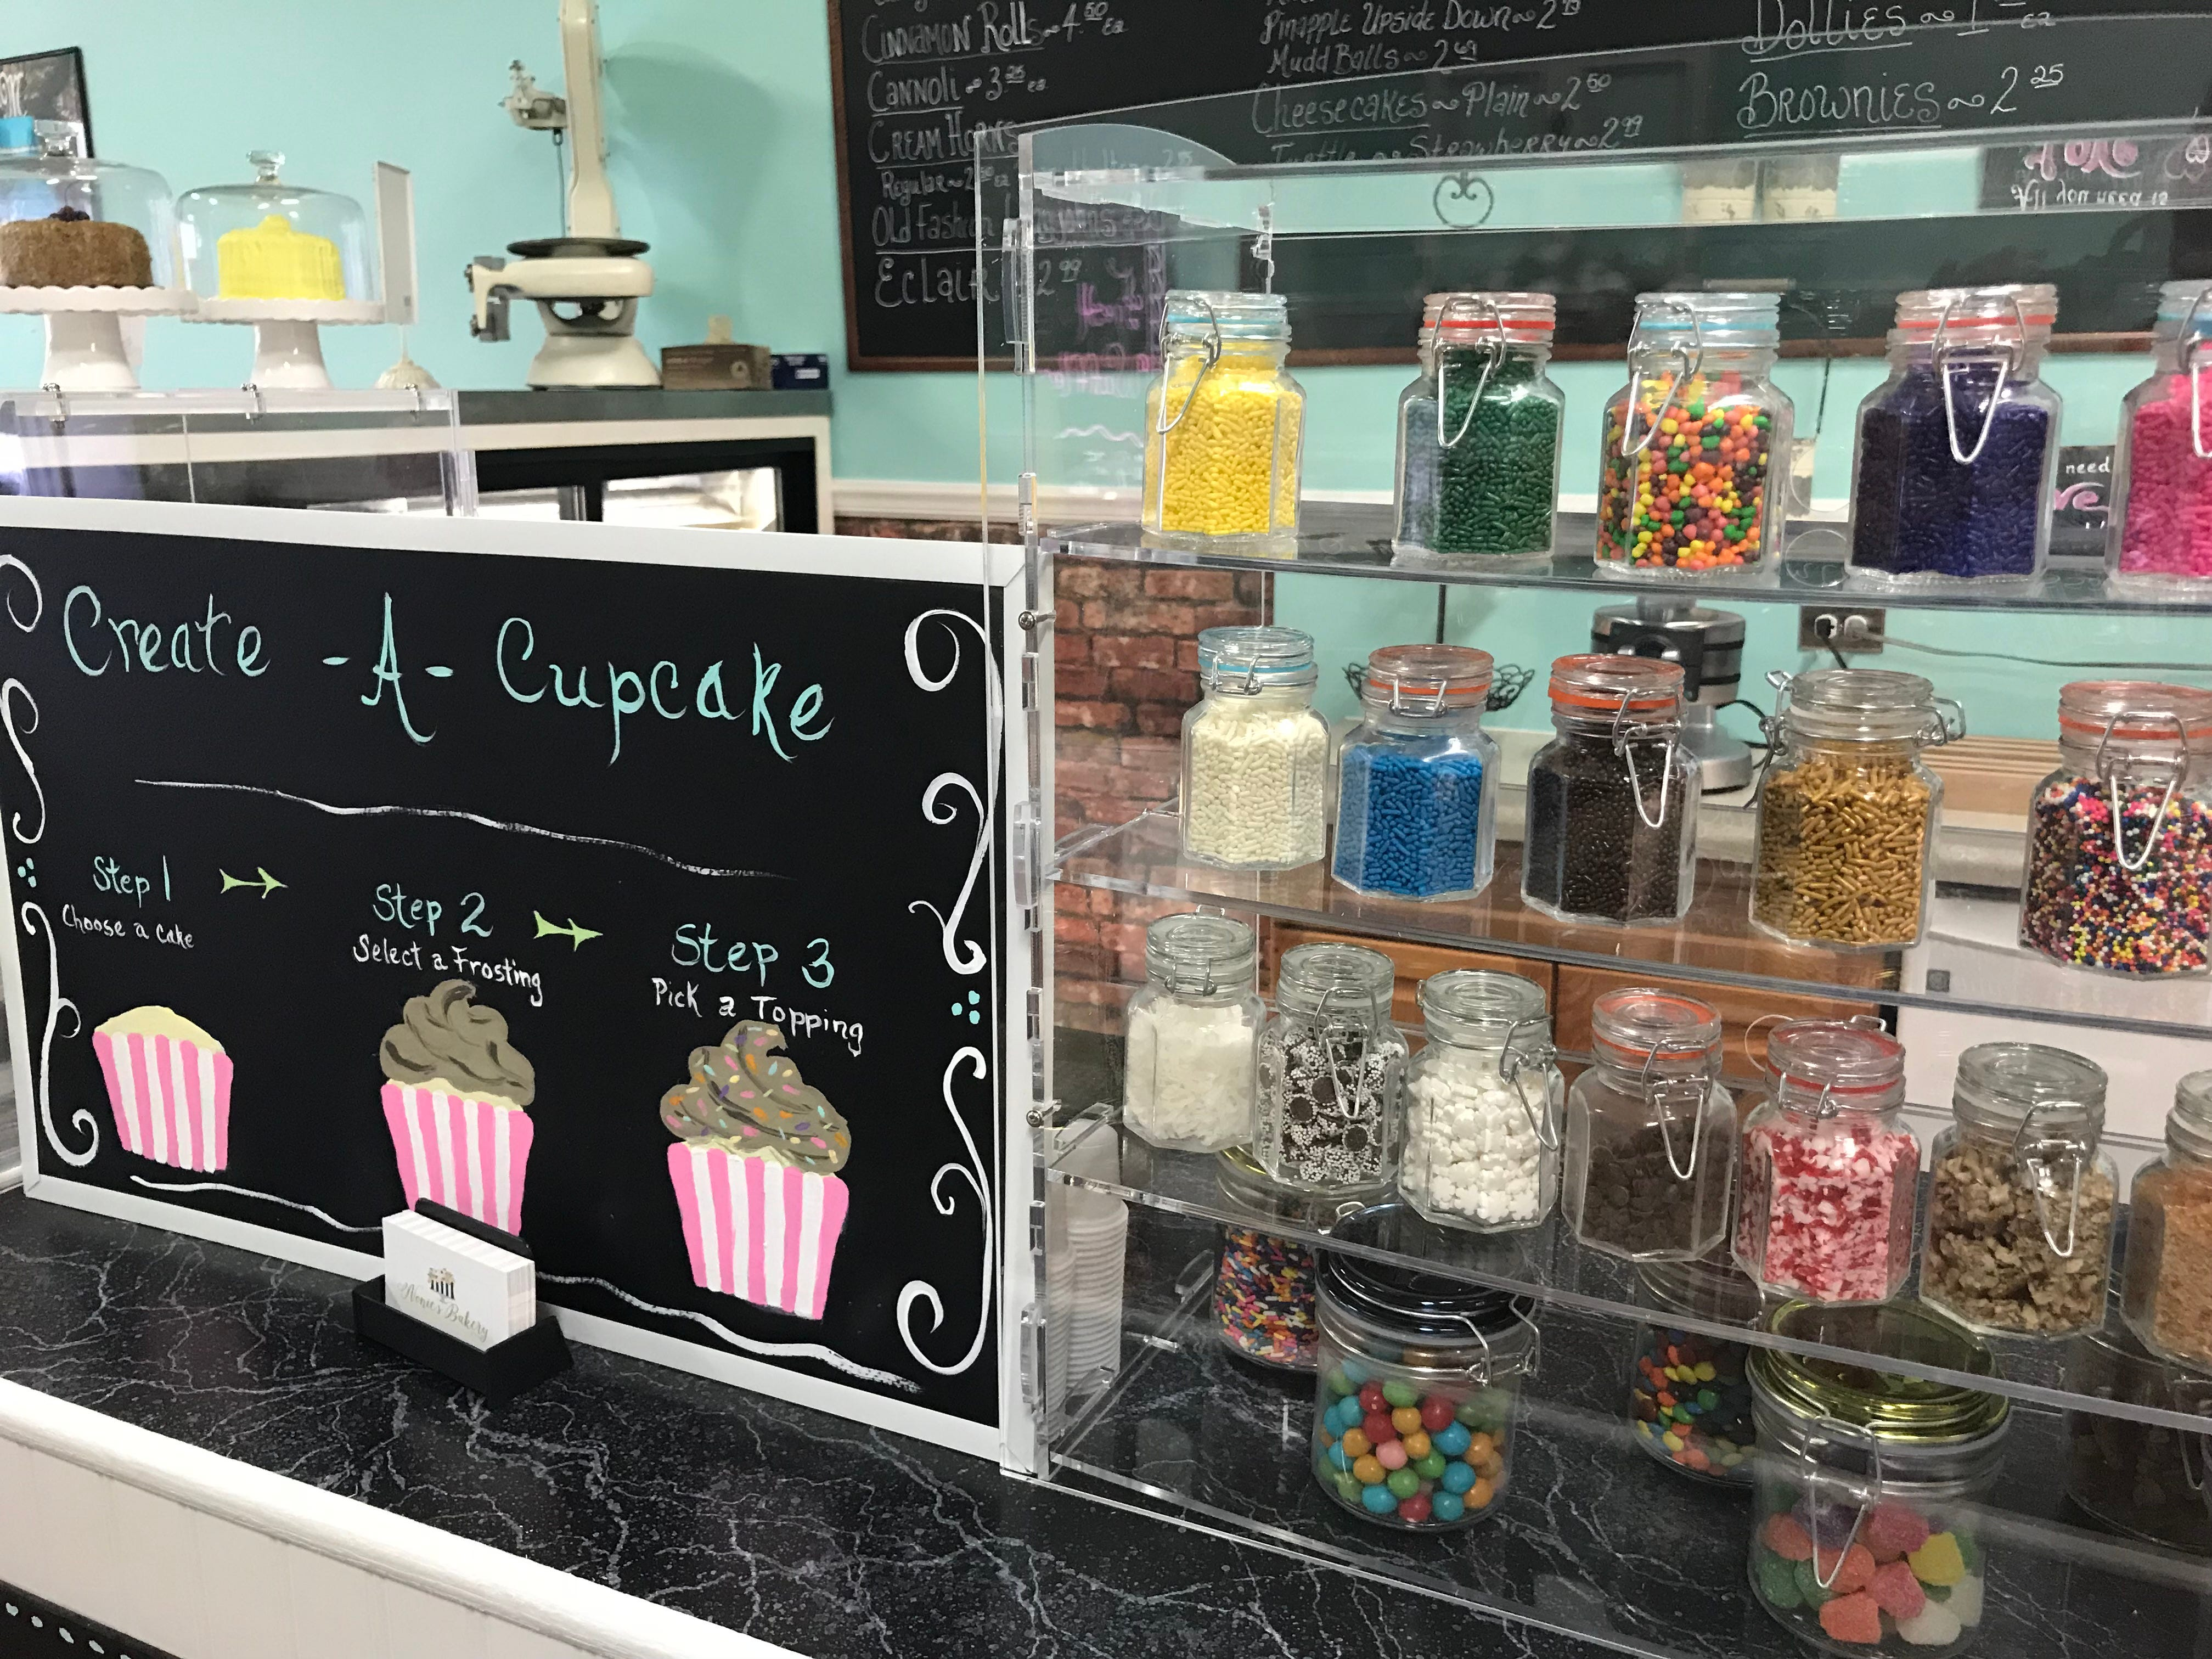 Create your own cupcake at Nonie's Bakery in Murfreesboro.